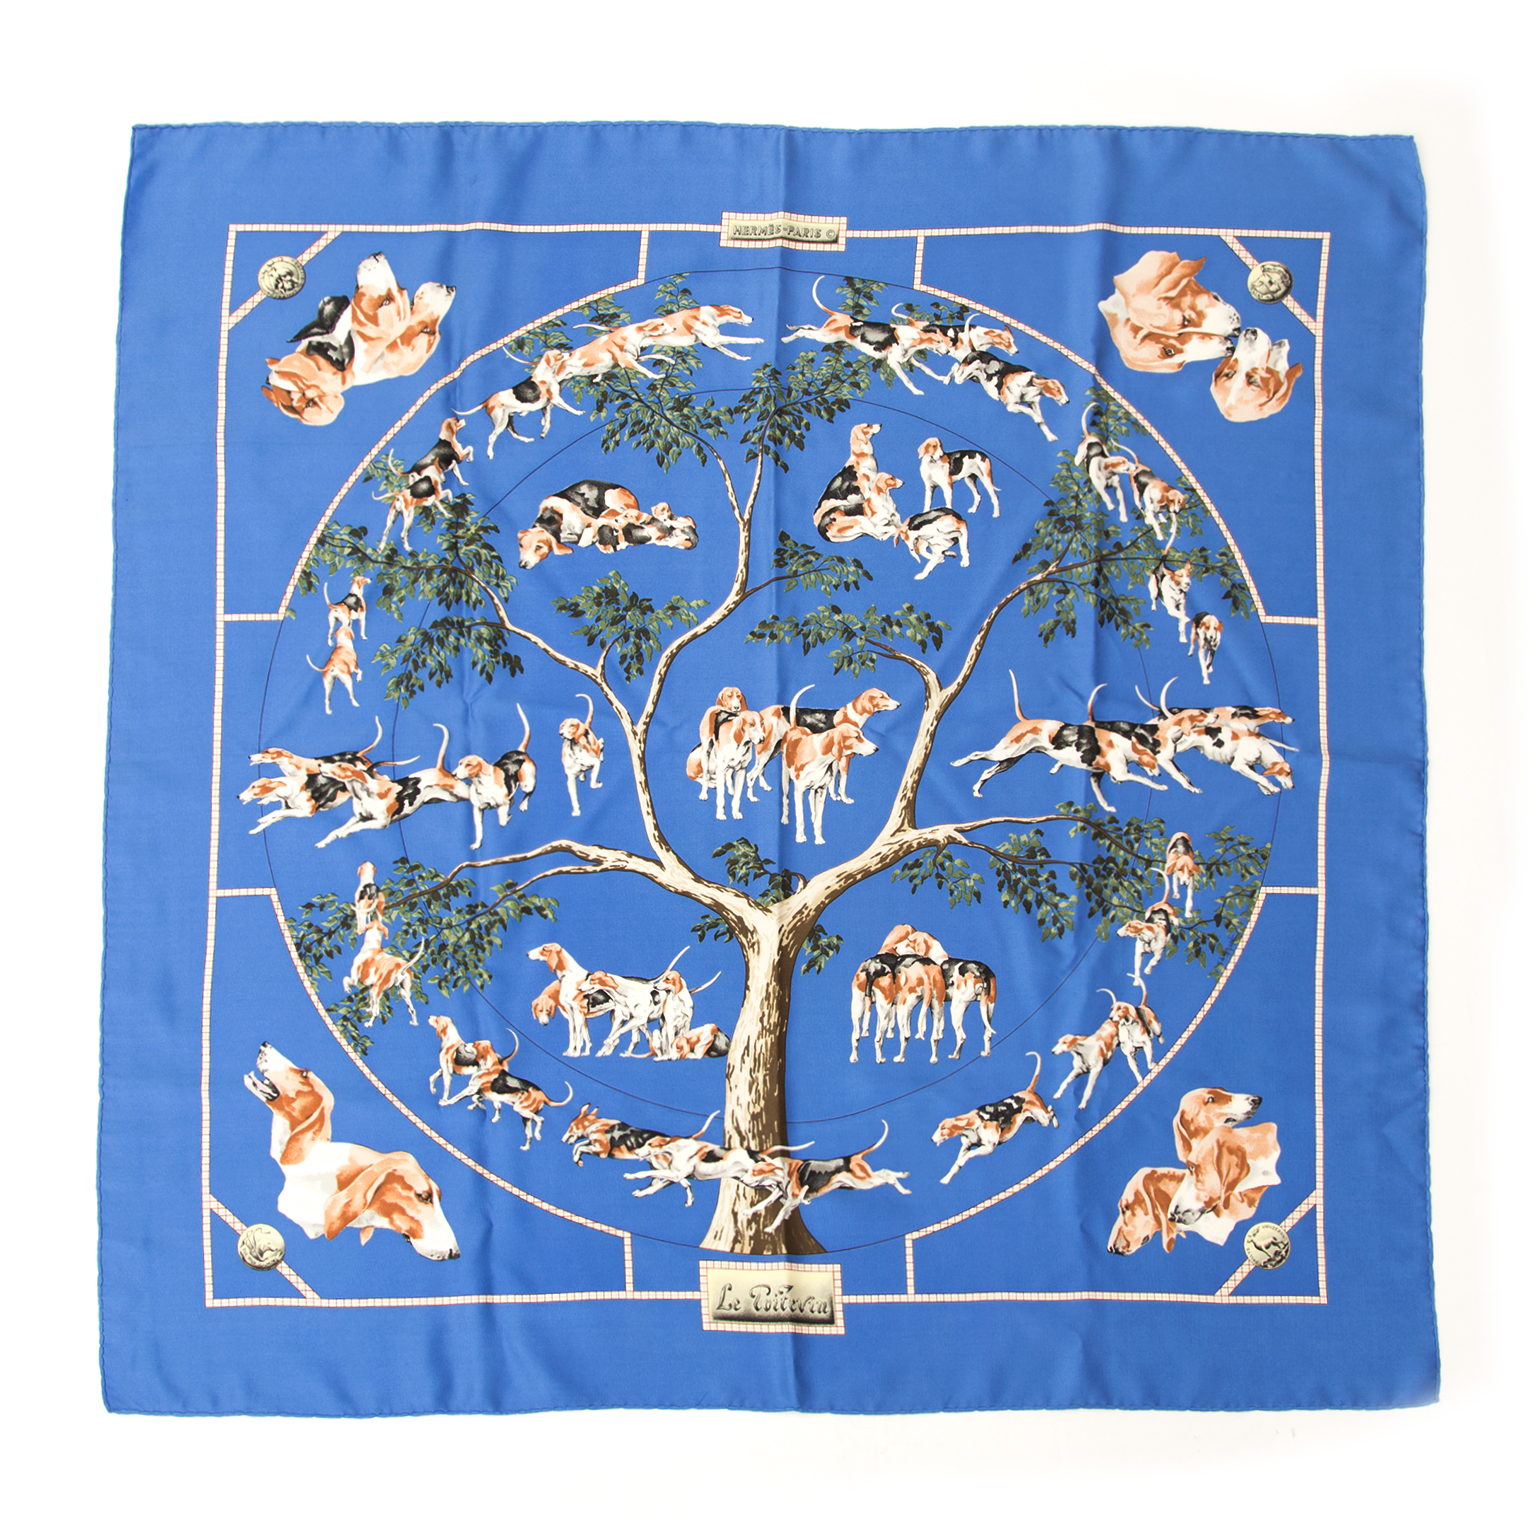 Hermes scarf Le Poitevin. Buy authentic vintage Hermès items at the right price at LabelLOV vintage webshop